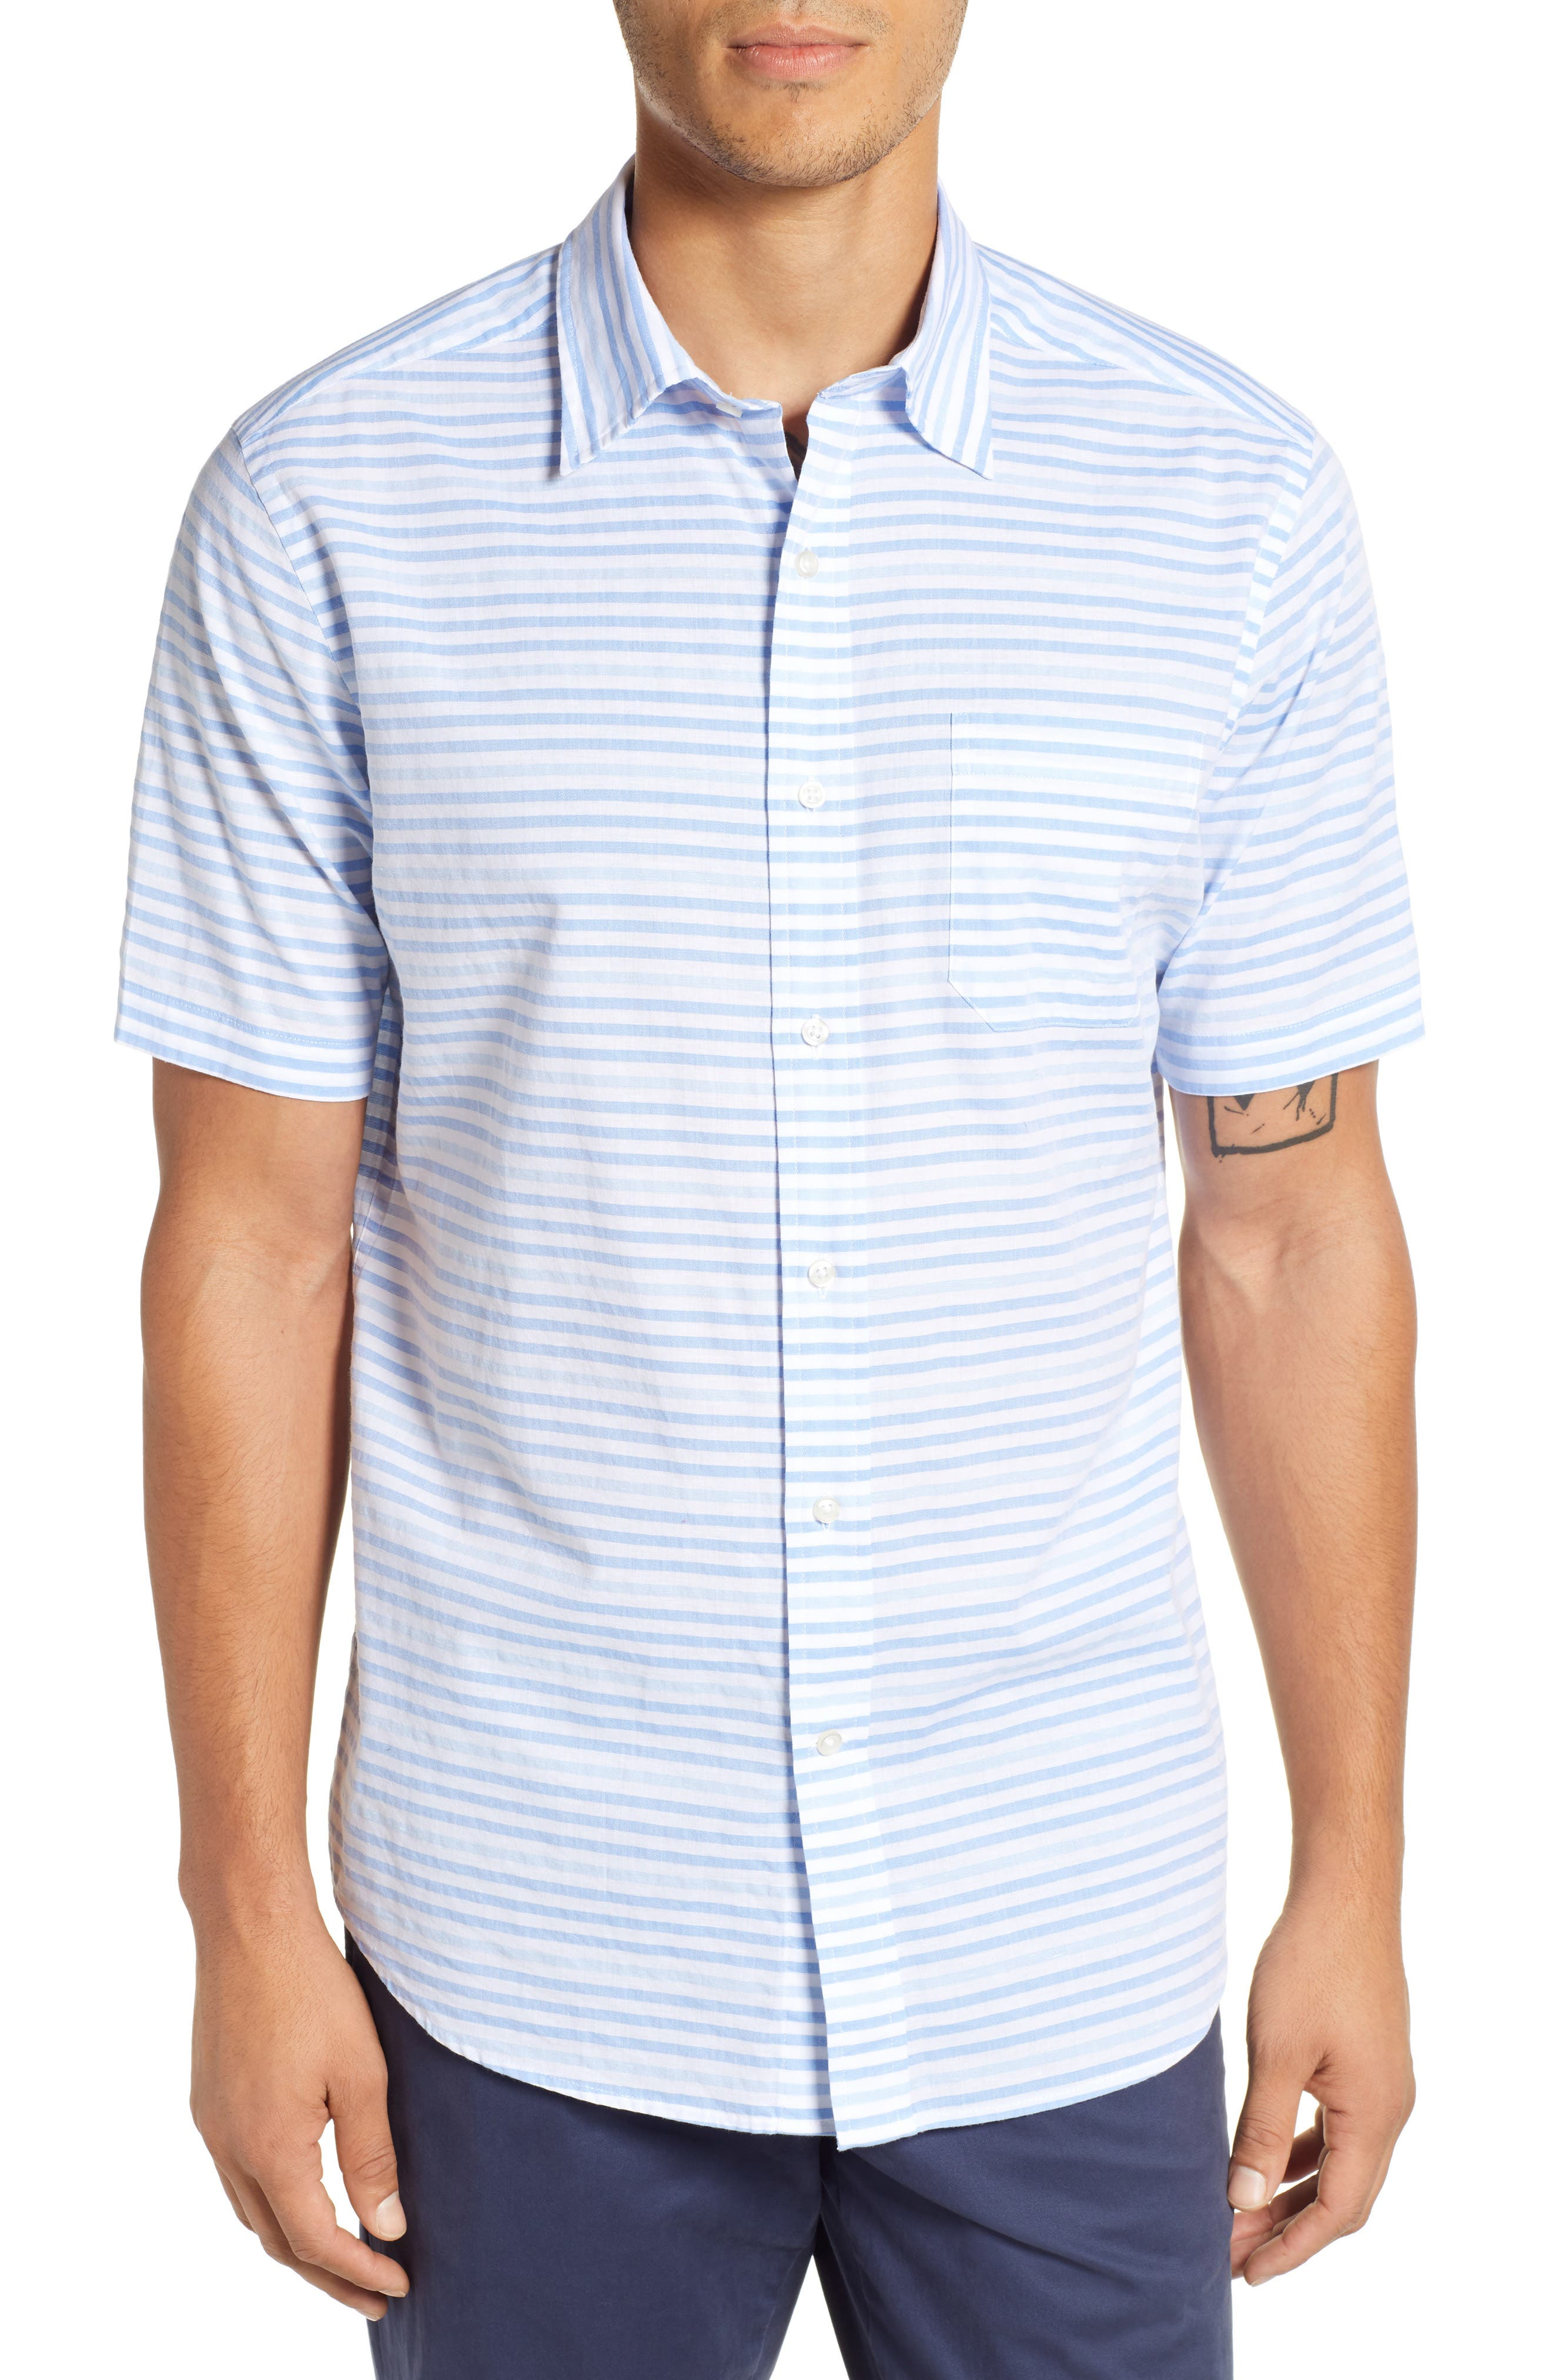 SOUTHERN TIDE Ocean View Regular Fit Stripe Sport Shirt in Marina